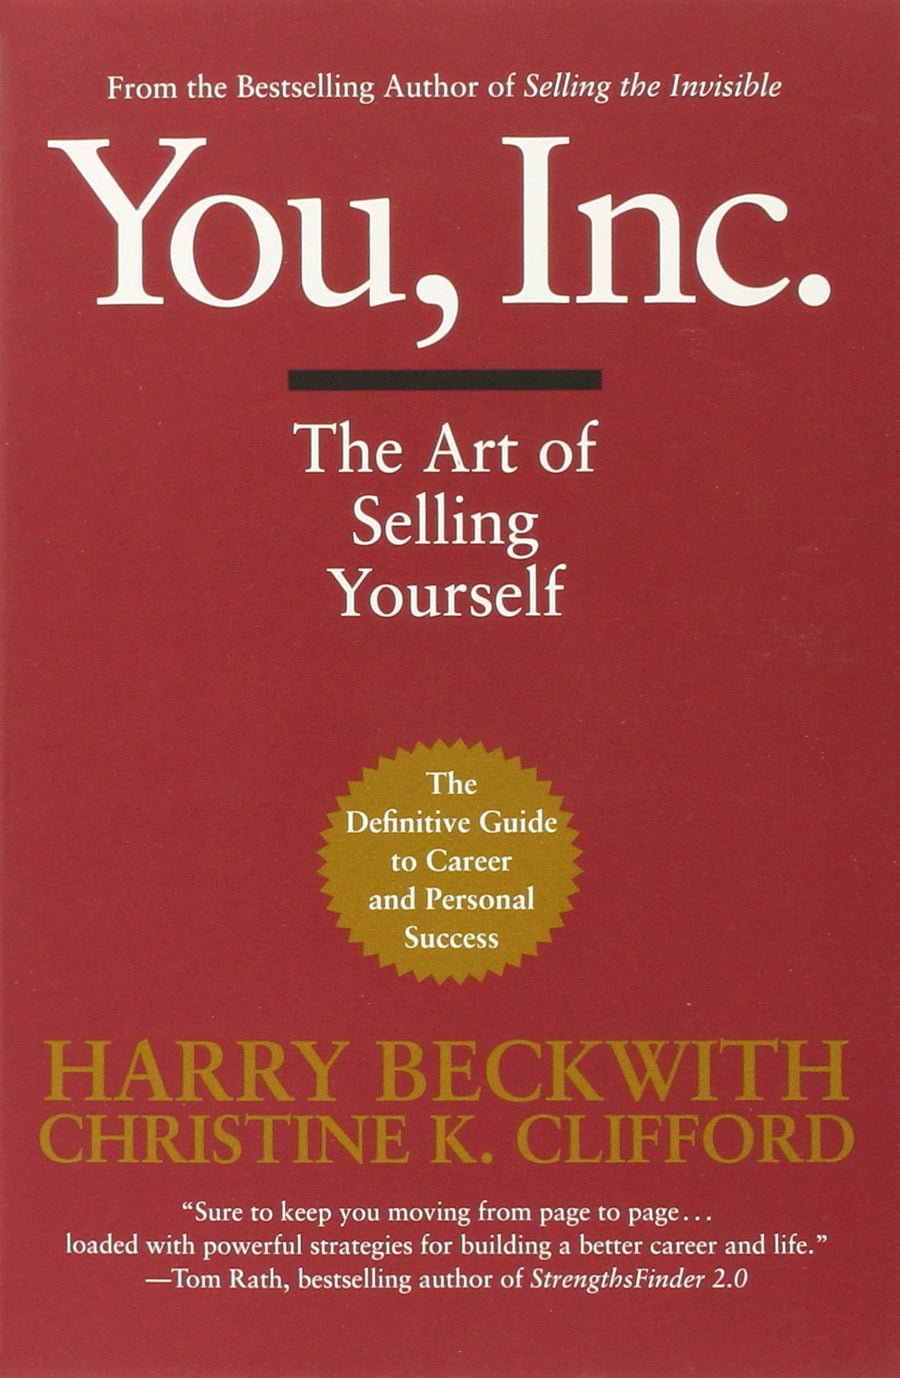 You, Inc.: The Art of Selling Yourself by Harry Beckwith